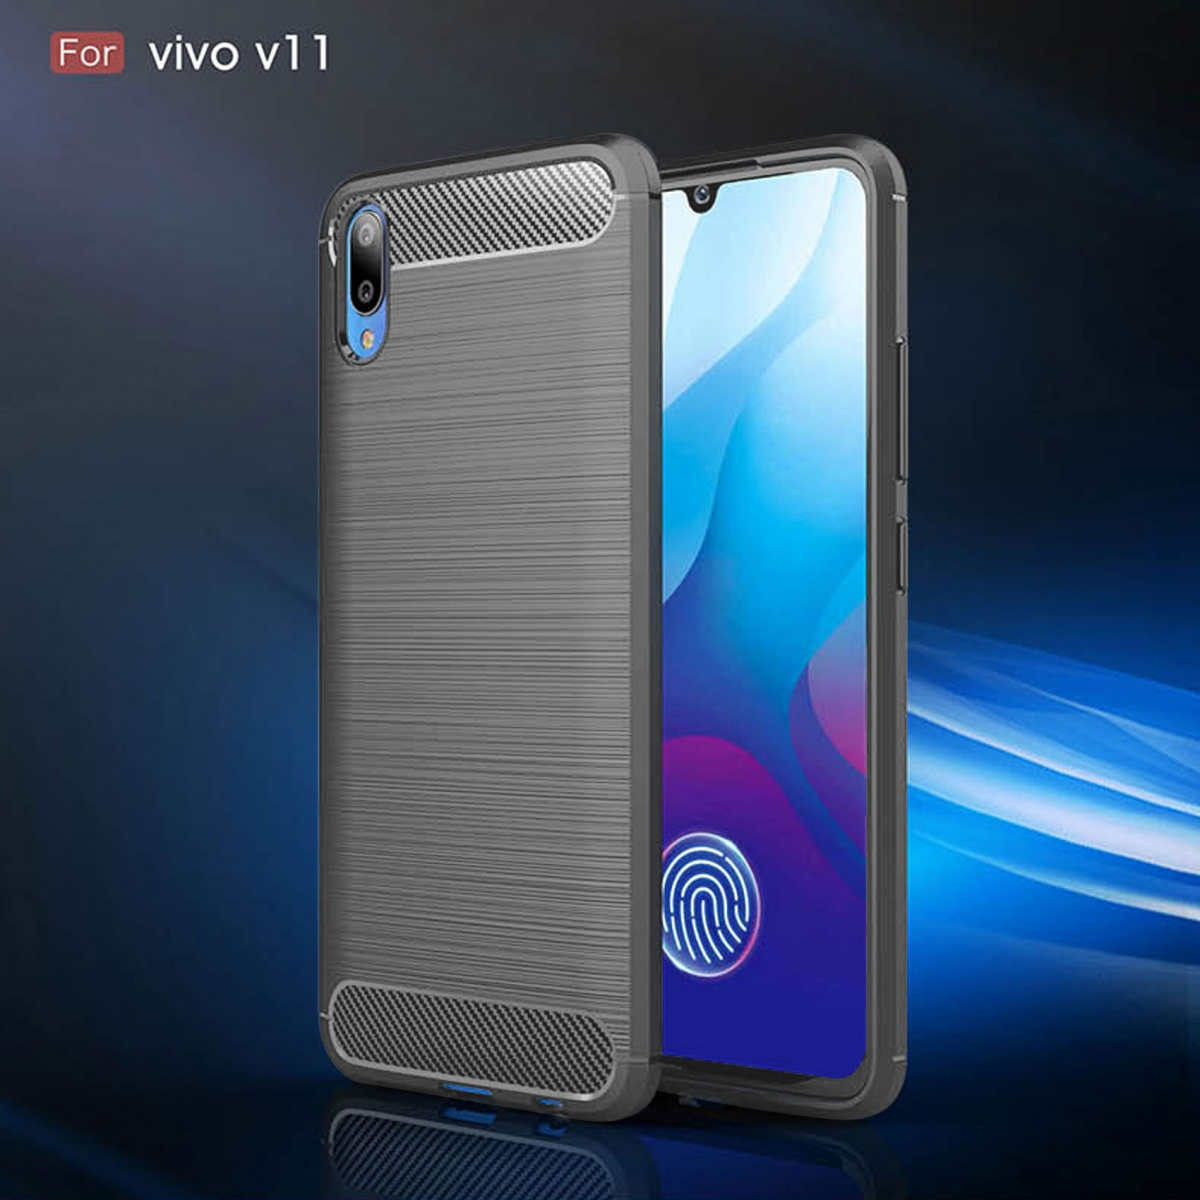 FOR SKU Vivo V11 Fashion Fiber Phone Case - Gray